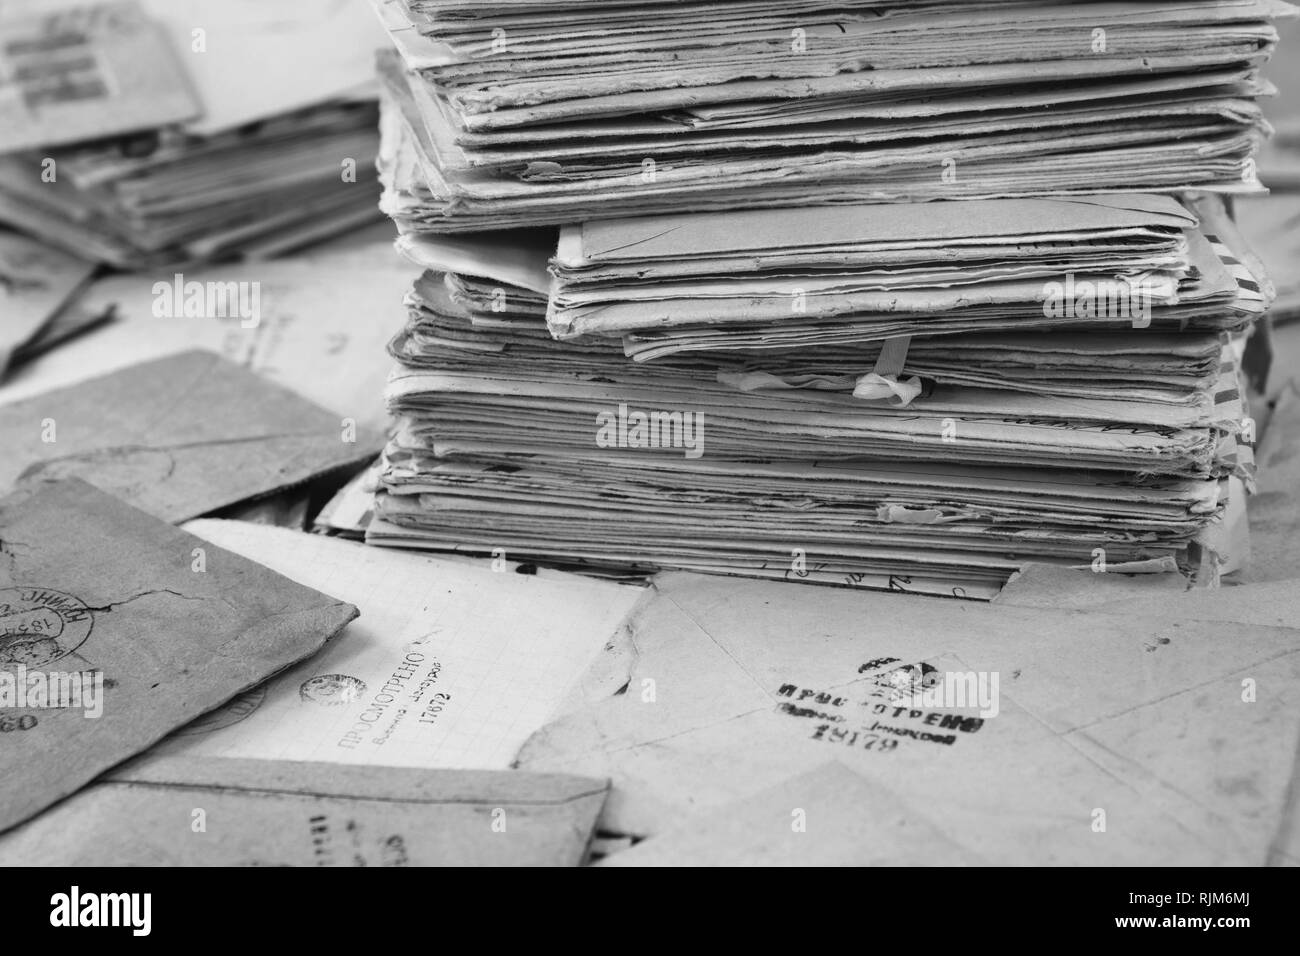 Pile of the old postal paper mails of 20 century in USSR. Envelopes are stamped: 'Viewed by military cencorship'. Black and white - Stock Image